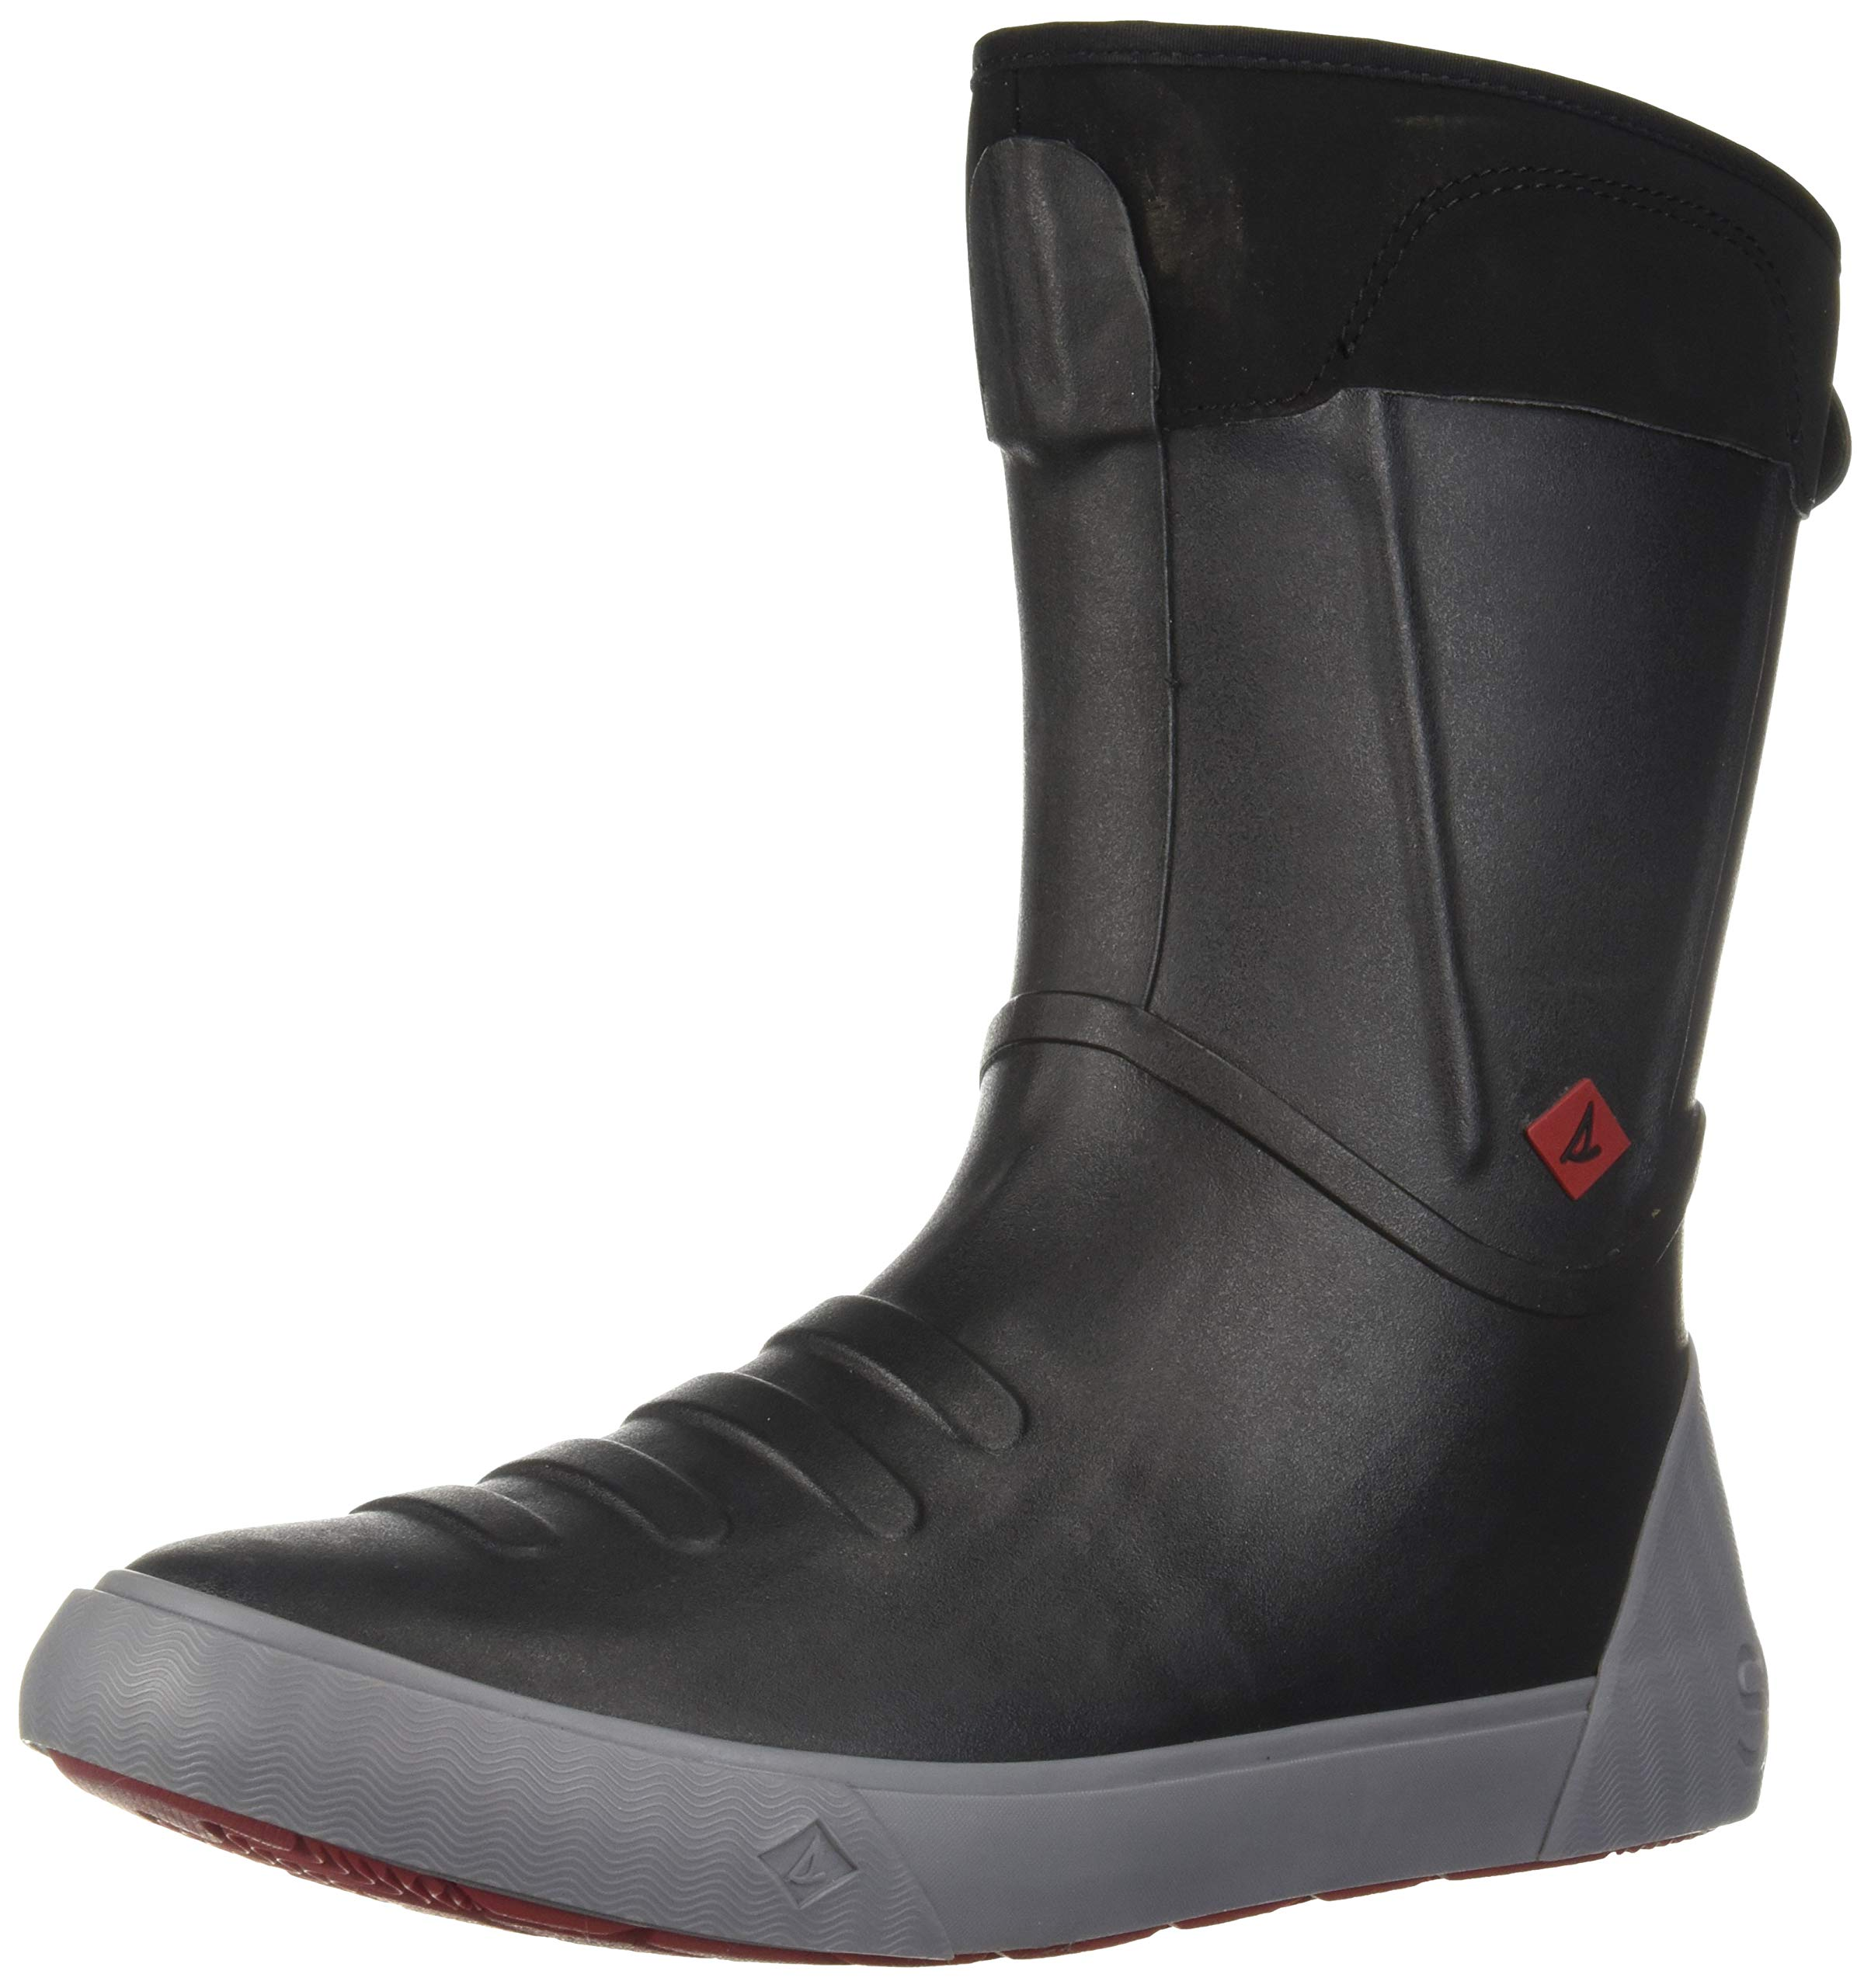 Sperry Men's Cutwater Heavy Weather Snow Boot